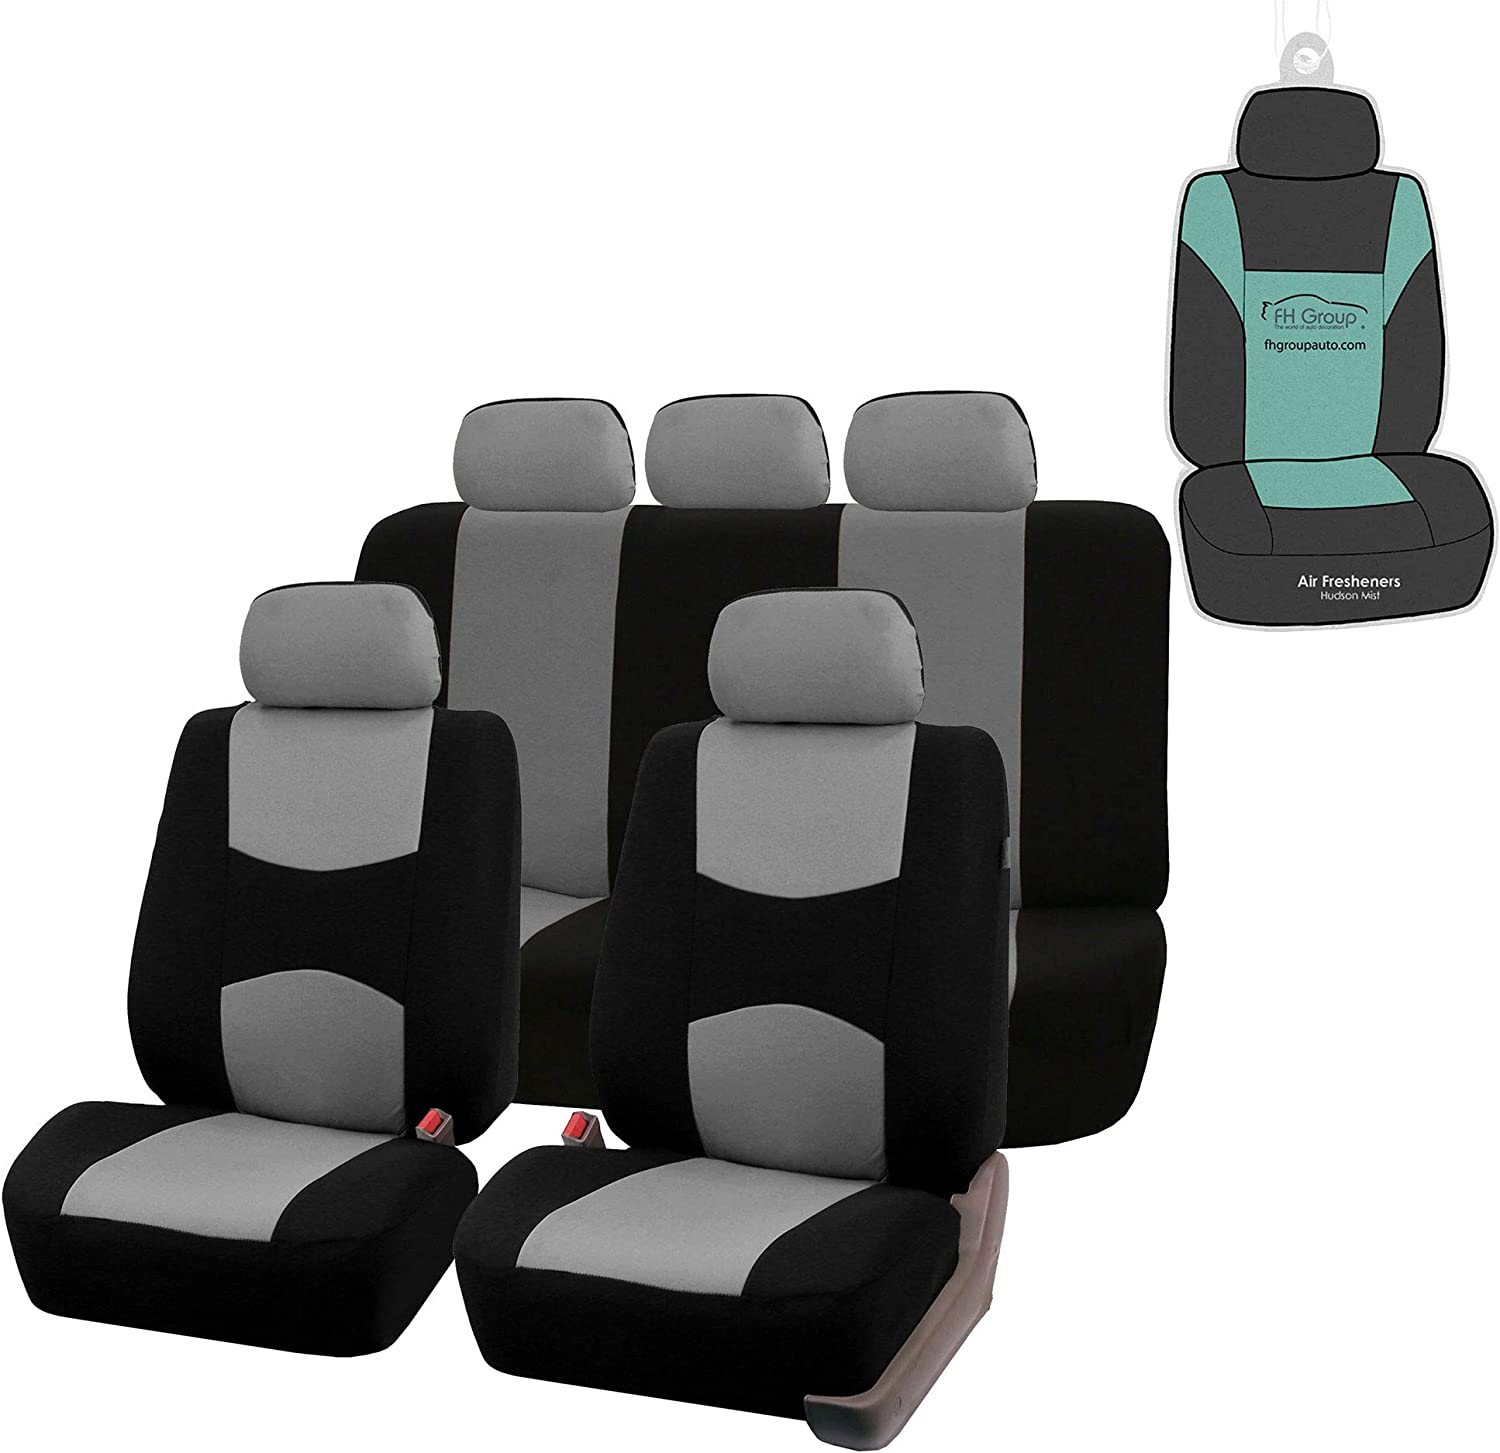 Airbag Compatible /& Split FH Group FH-FB051115 Multifunctional Flat Cloth Seat Covers Truck Gray//Black Color or Van SUV Fit Most Car